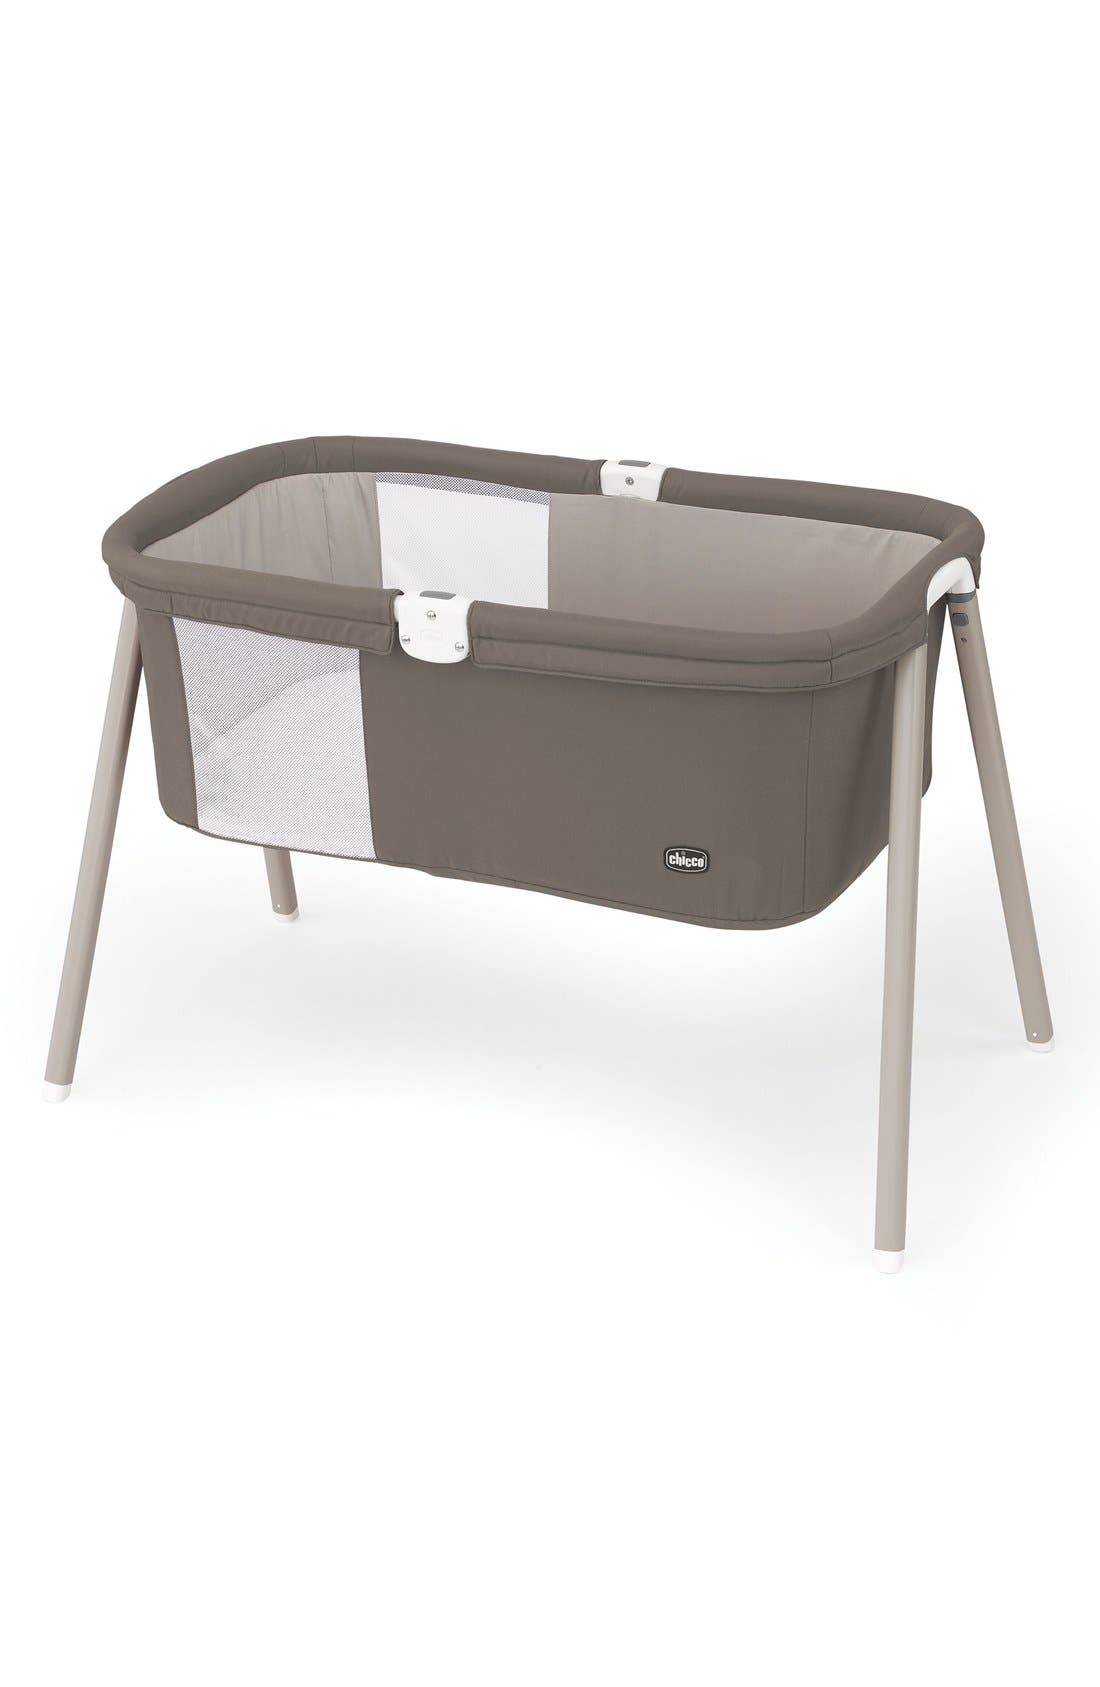 Chicco 'LullaGo' Portable Bassinet